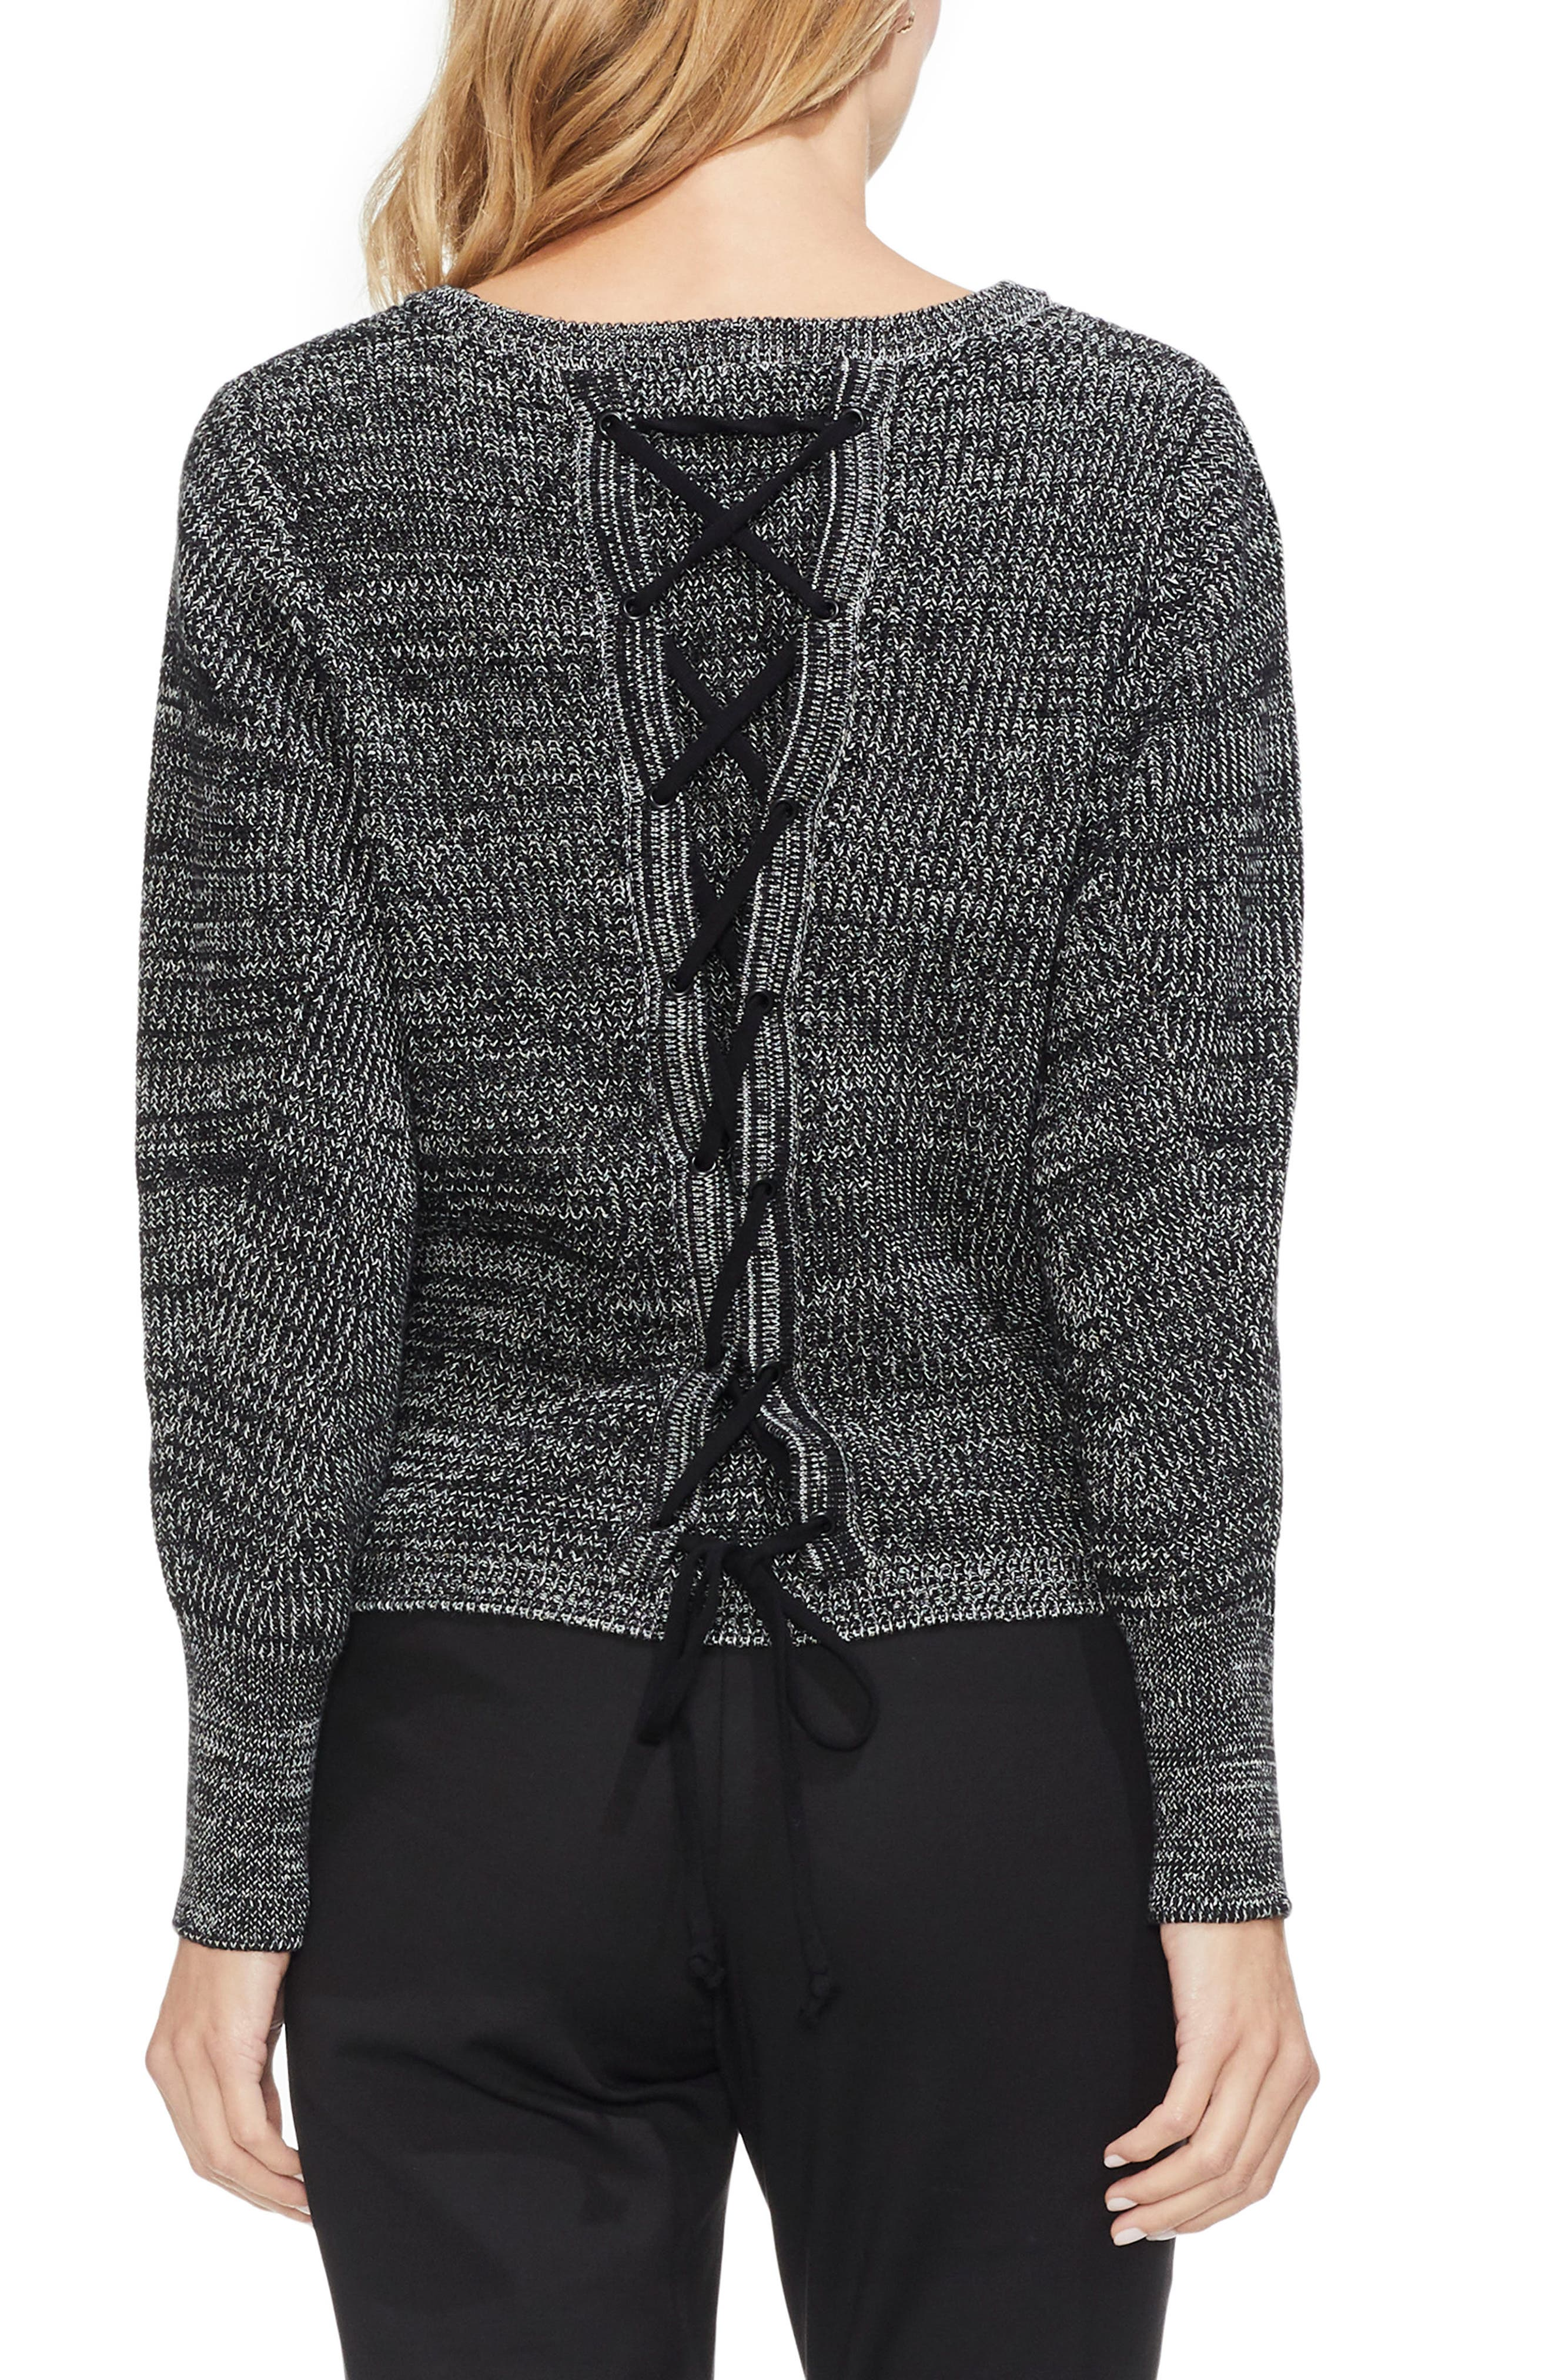 Lace-Up Back Sweater,                             Alternate thumbnail 2, color,                             BLACK MARLE